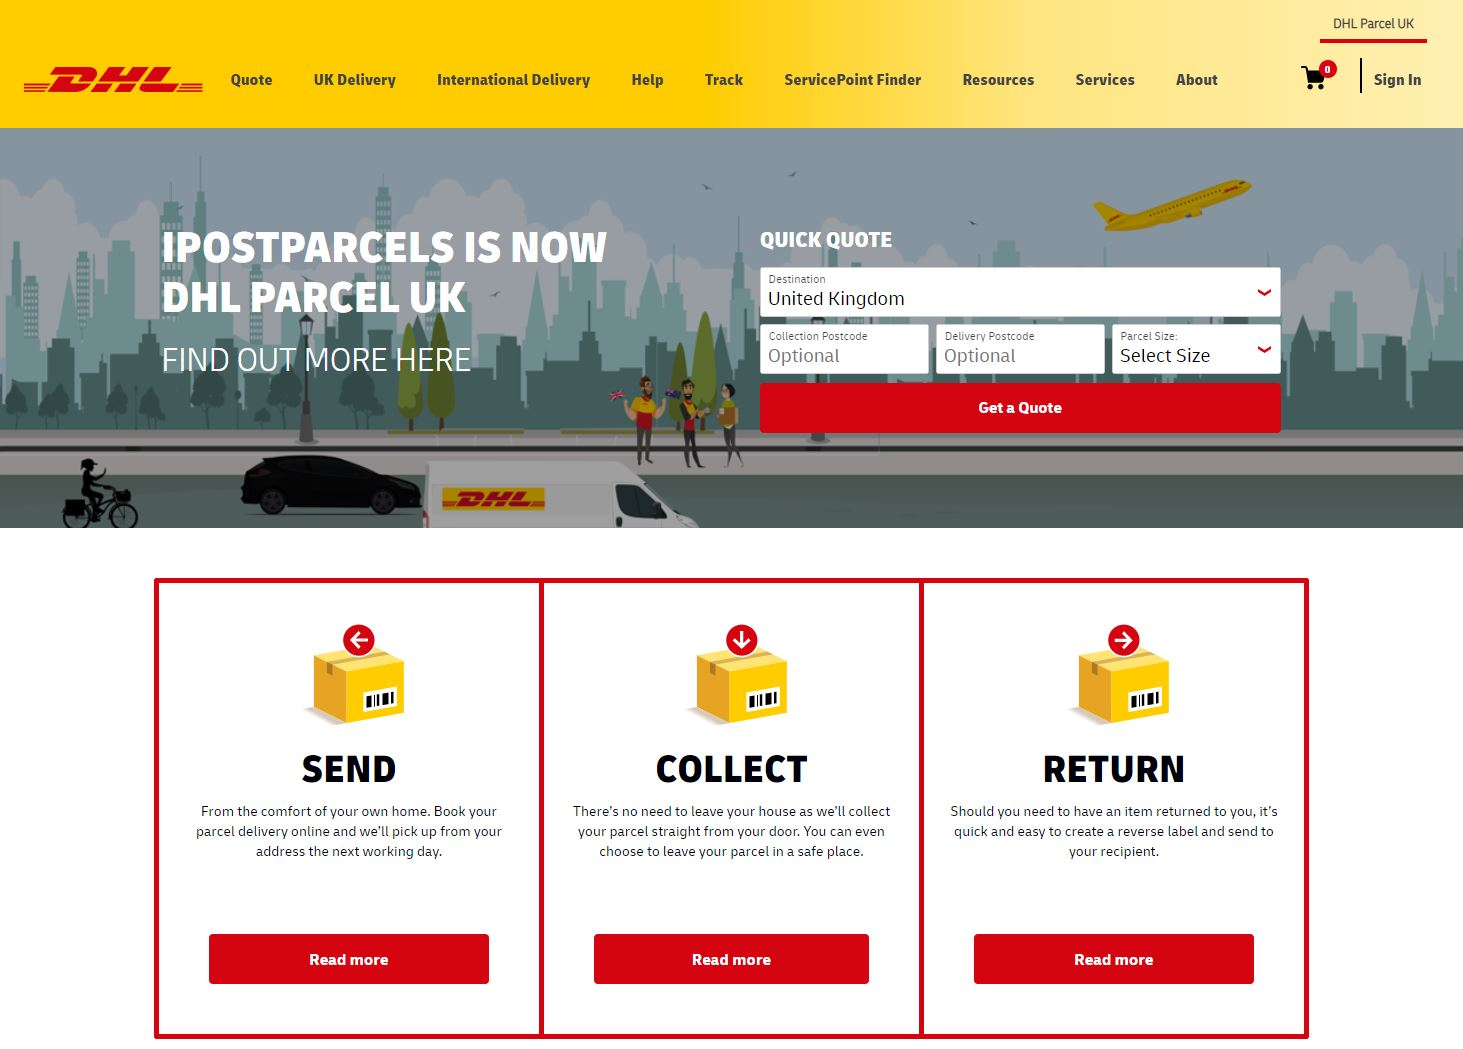 DHL Parcel UK Homepage